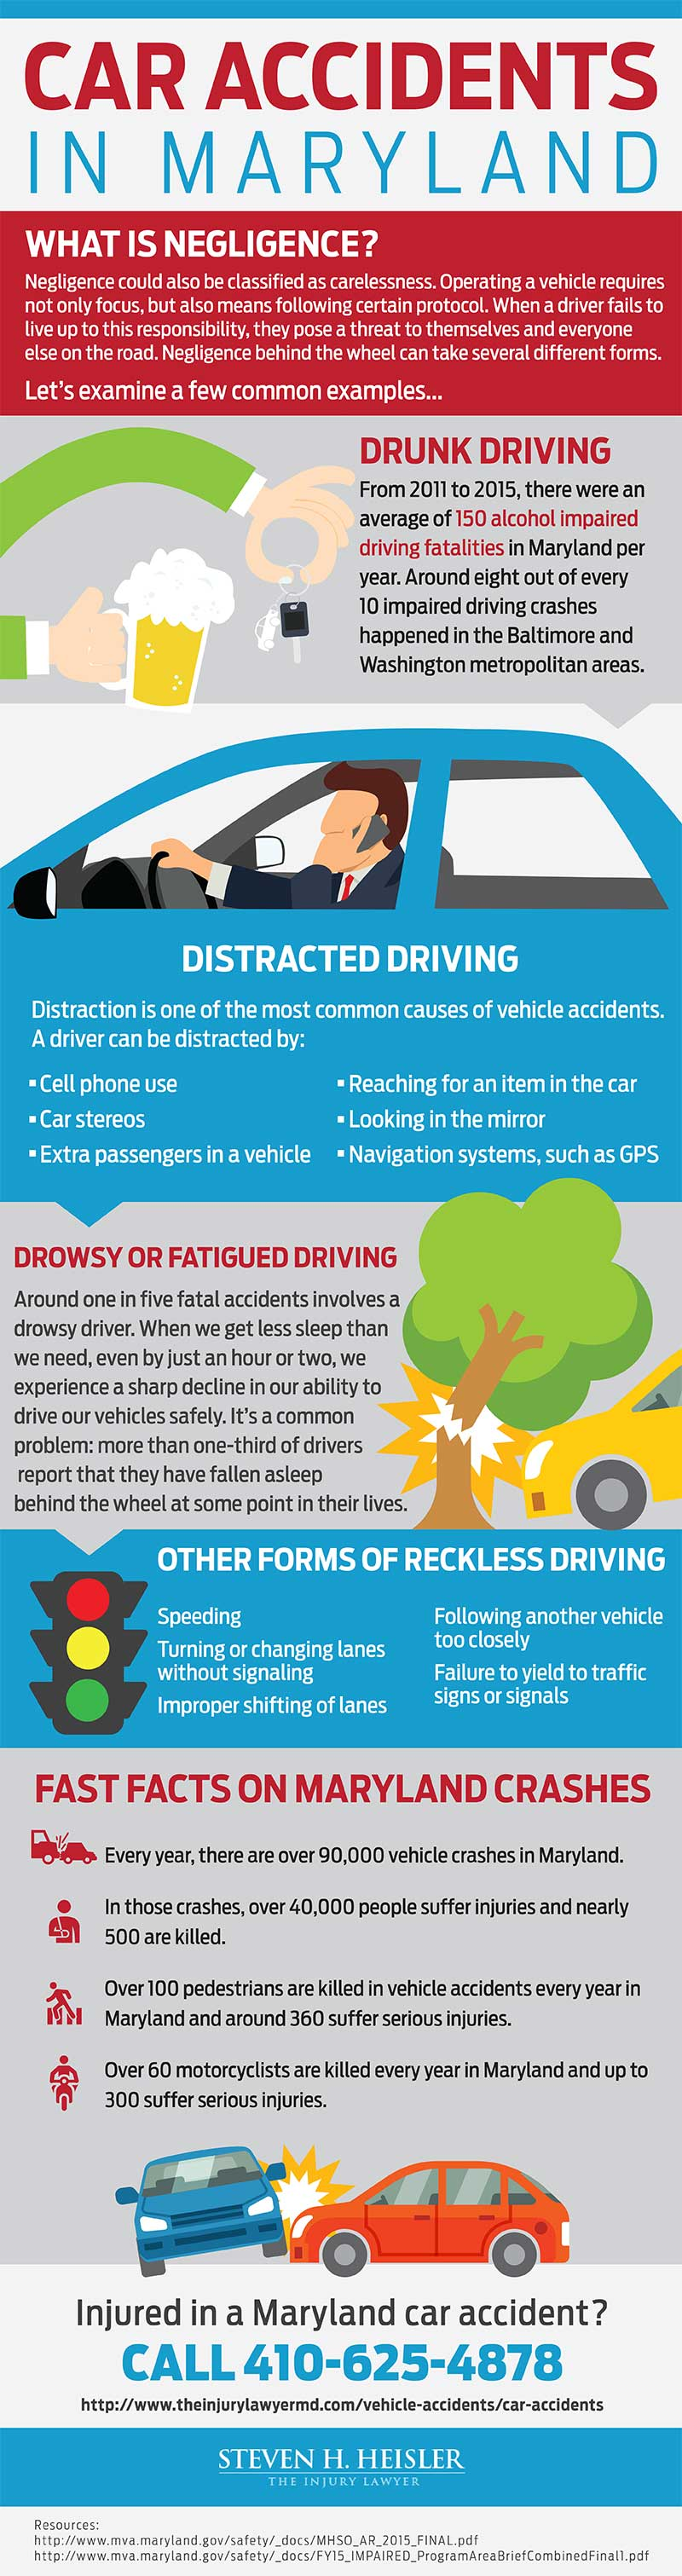 Heisler Car Accident Maryland infographic